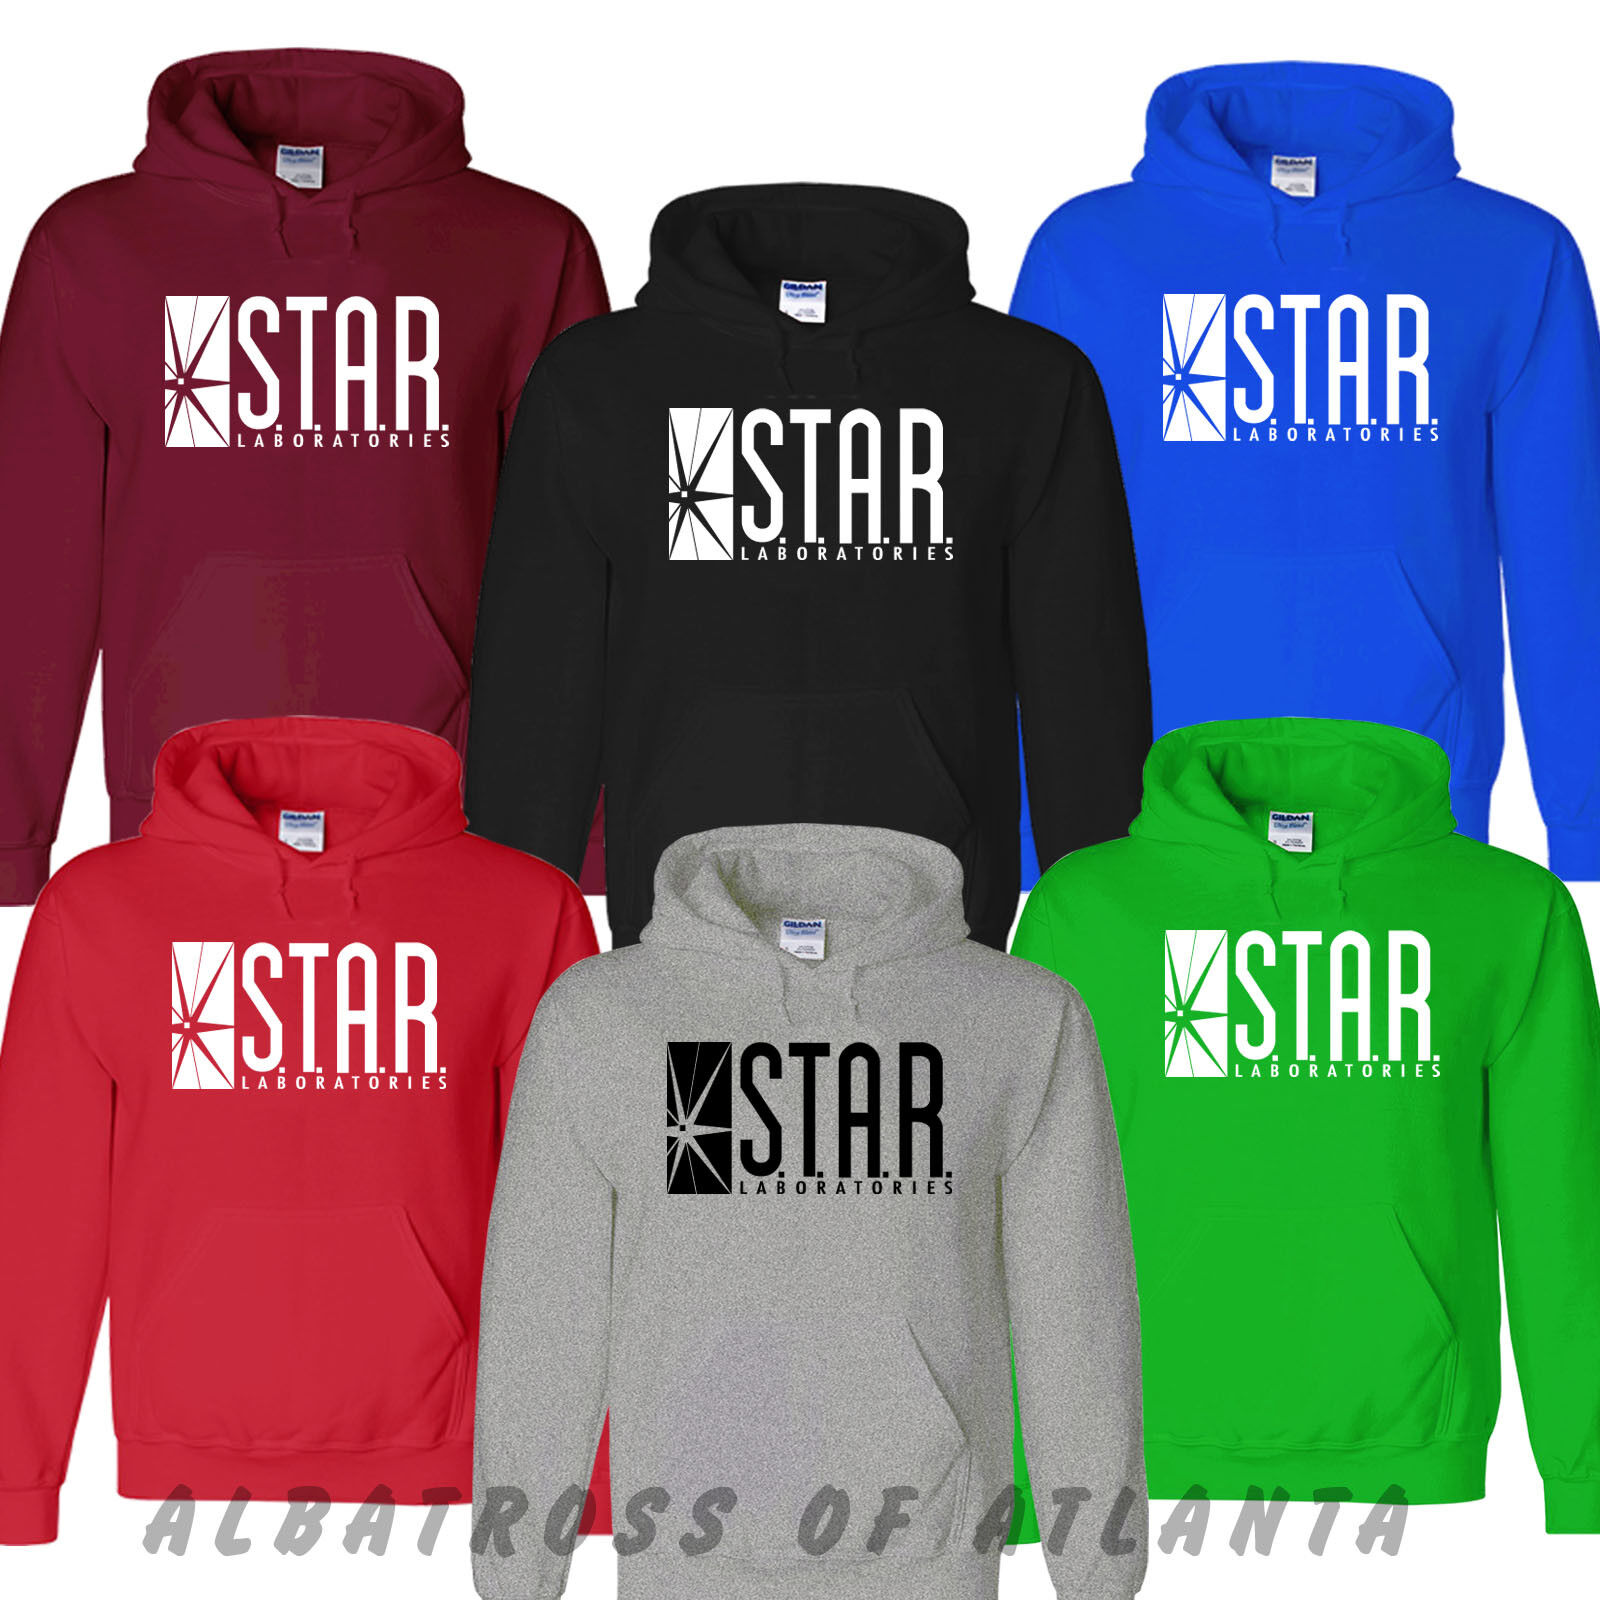 STAR LABROTORIES HOODY THE FLASH PULLOVER UNISEX S.T.A.R. LAB UNISEX HOODY